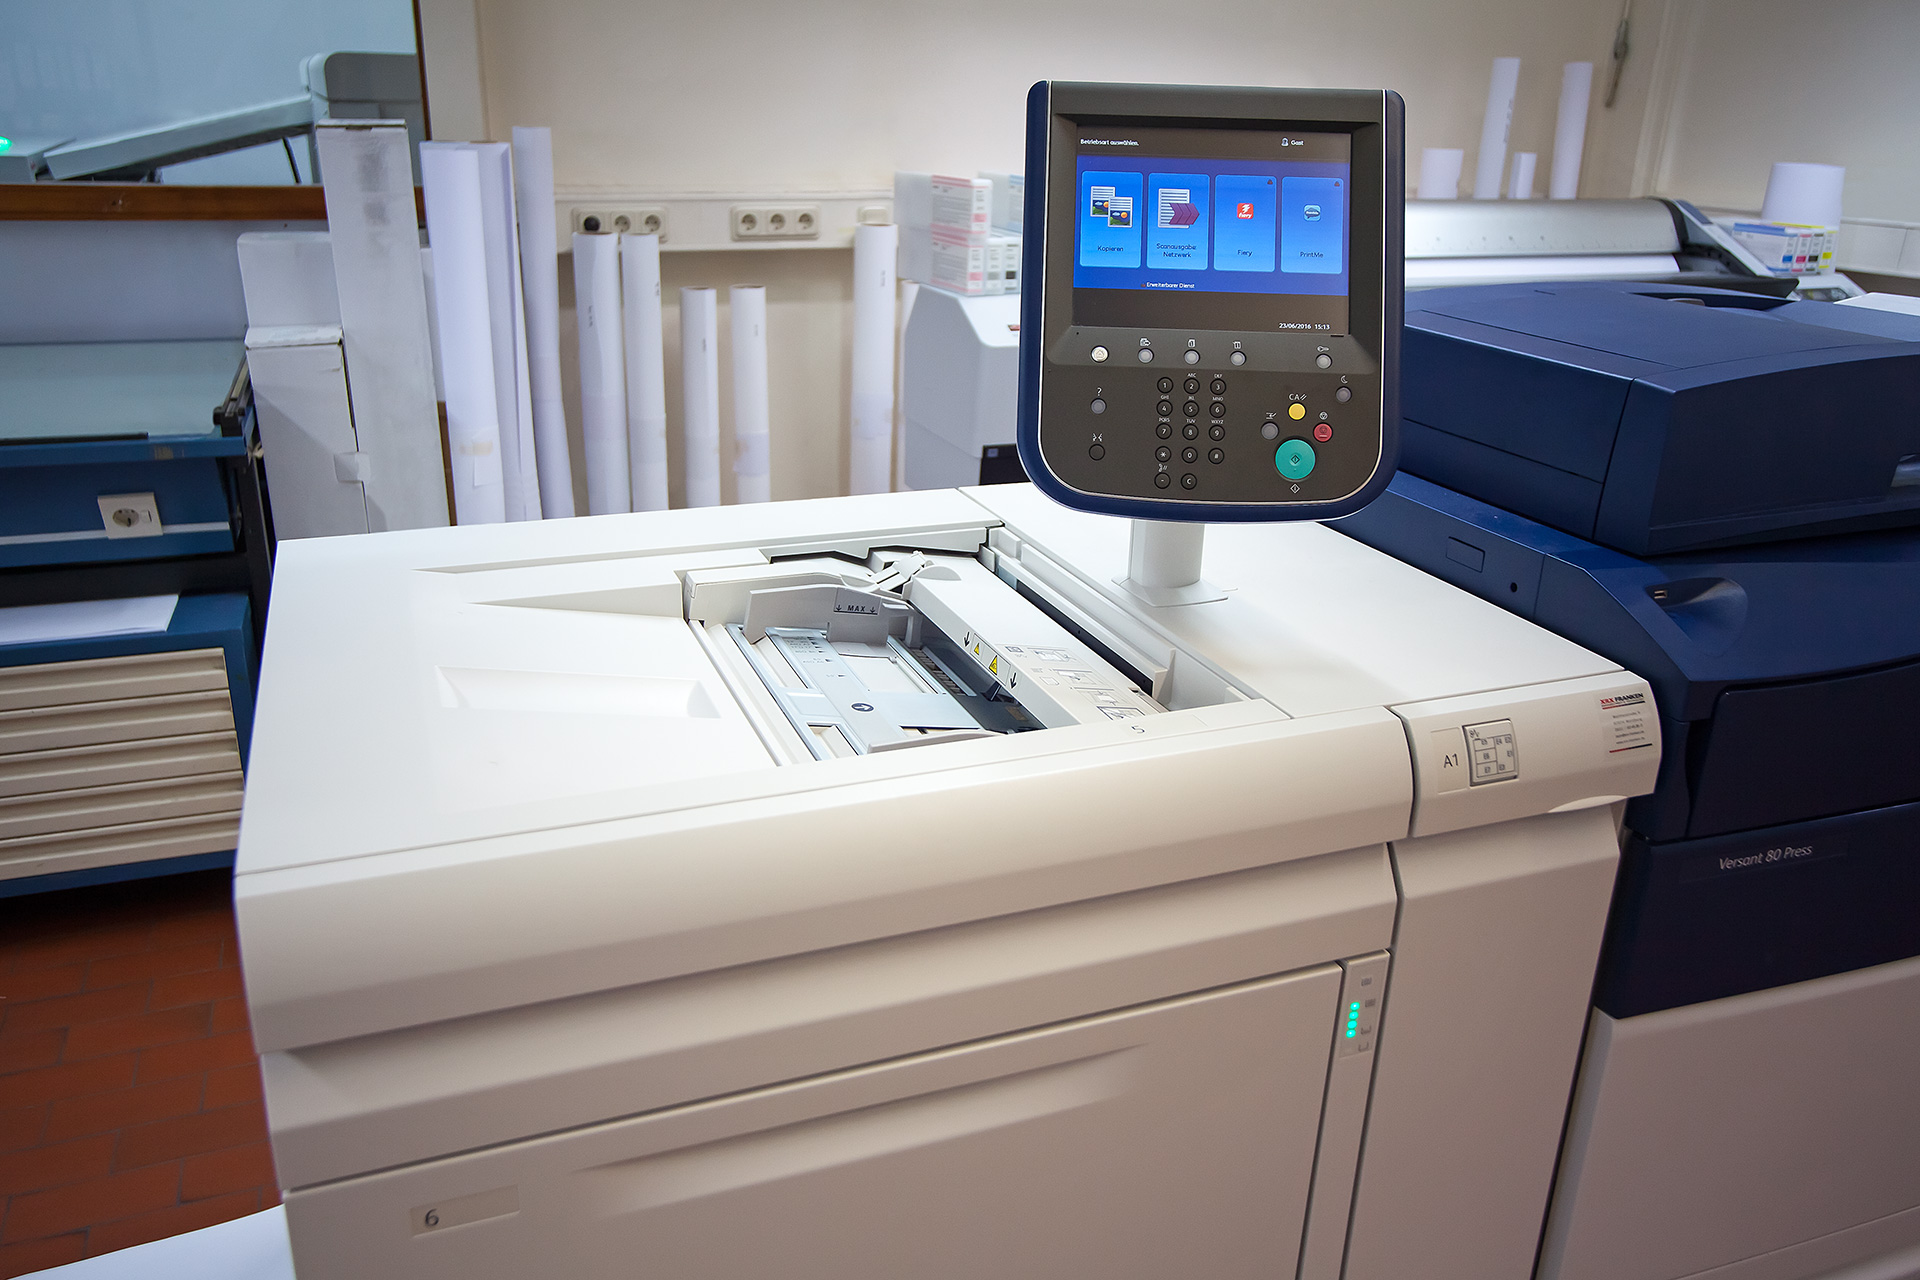 Digitaldrucker, Laserdrucker mit Display